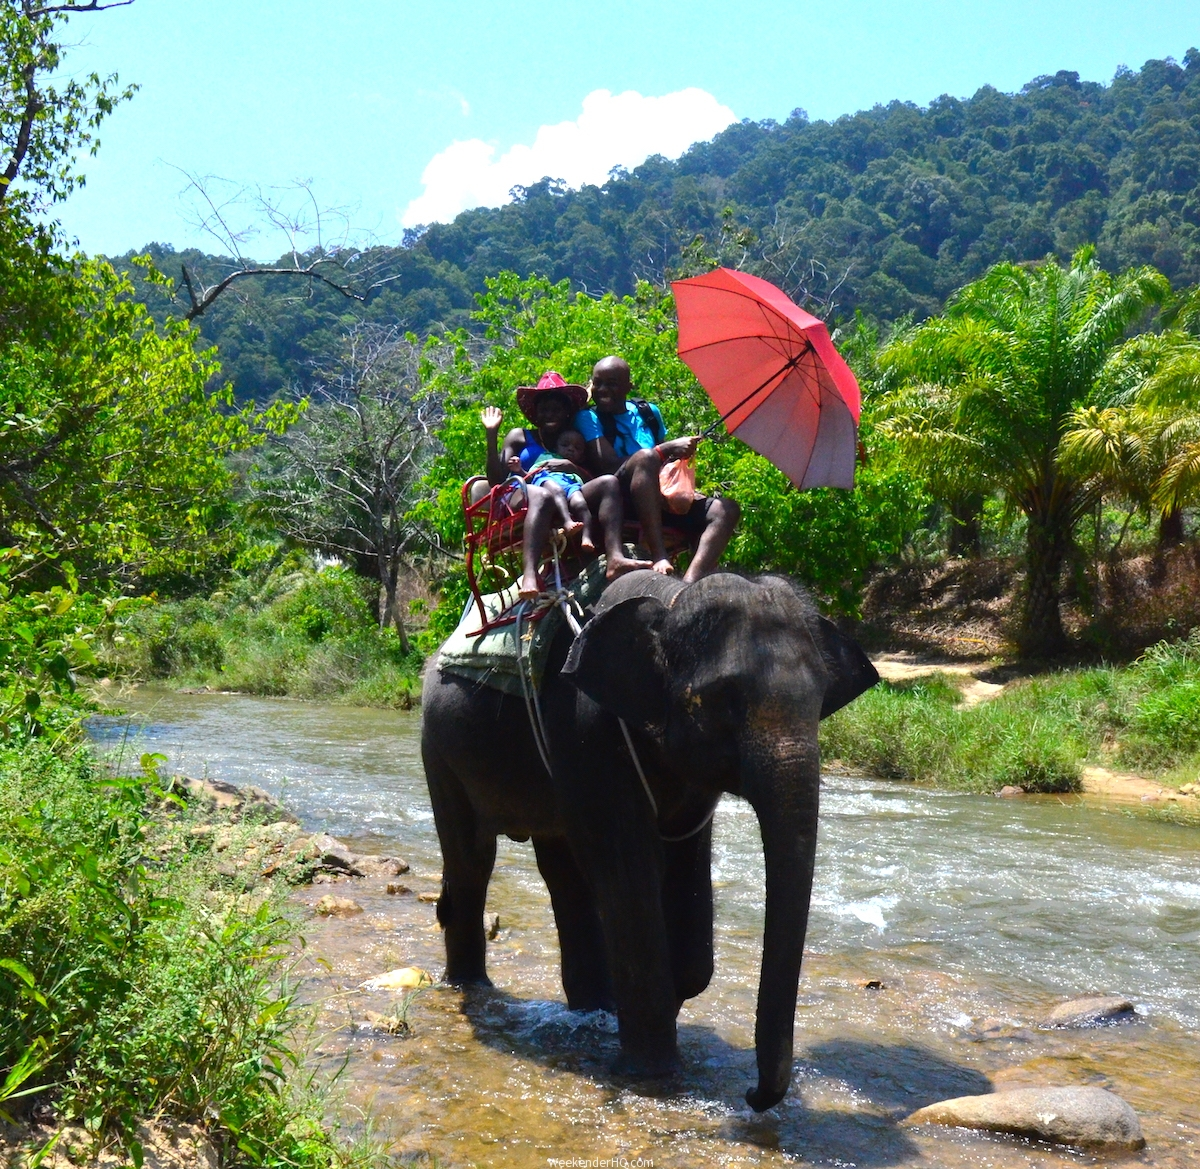 Peter and Hannah on Elephant Thailand